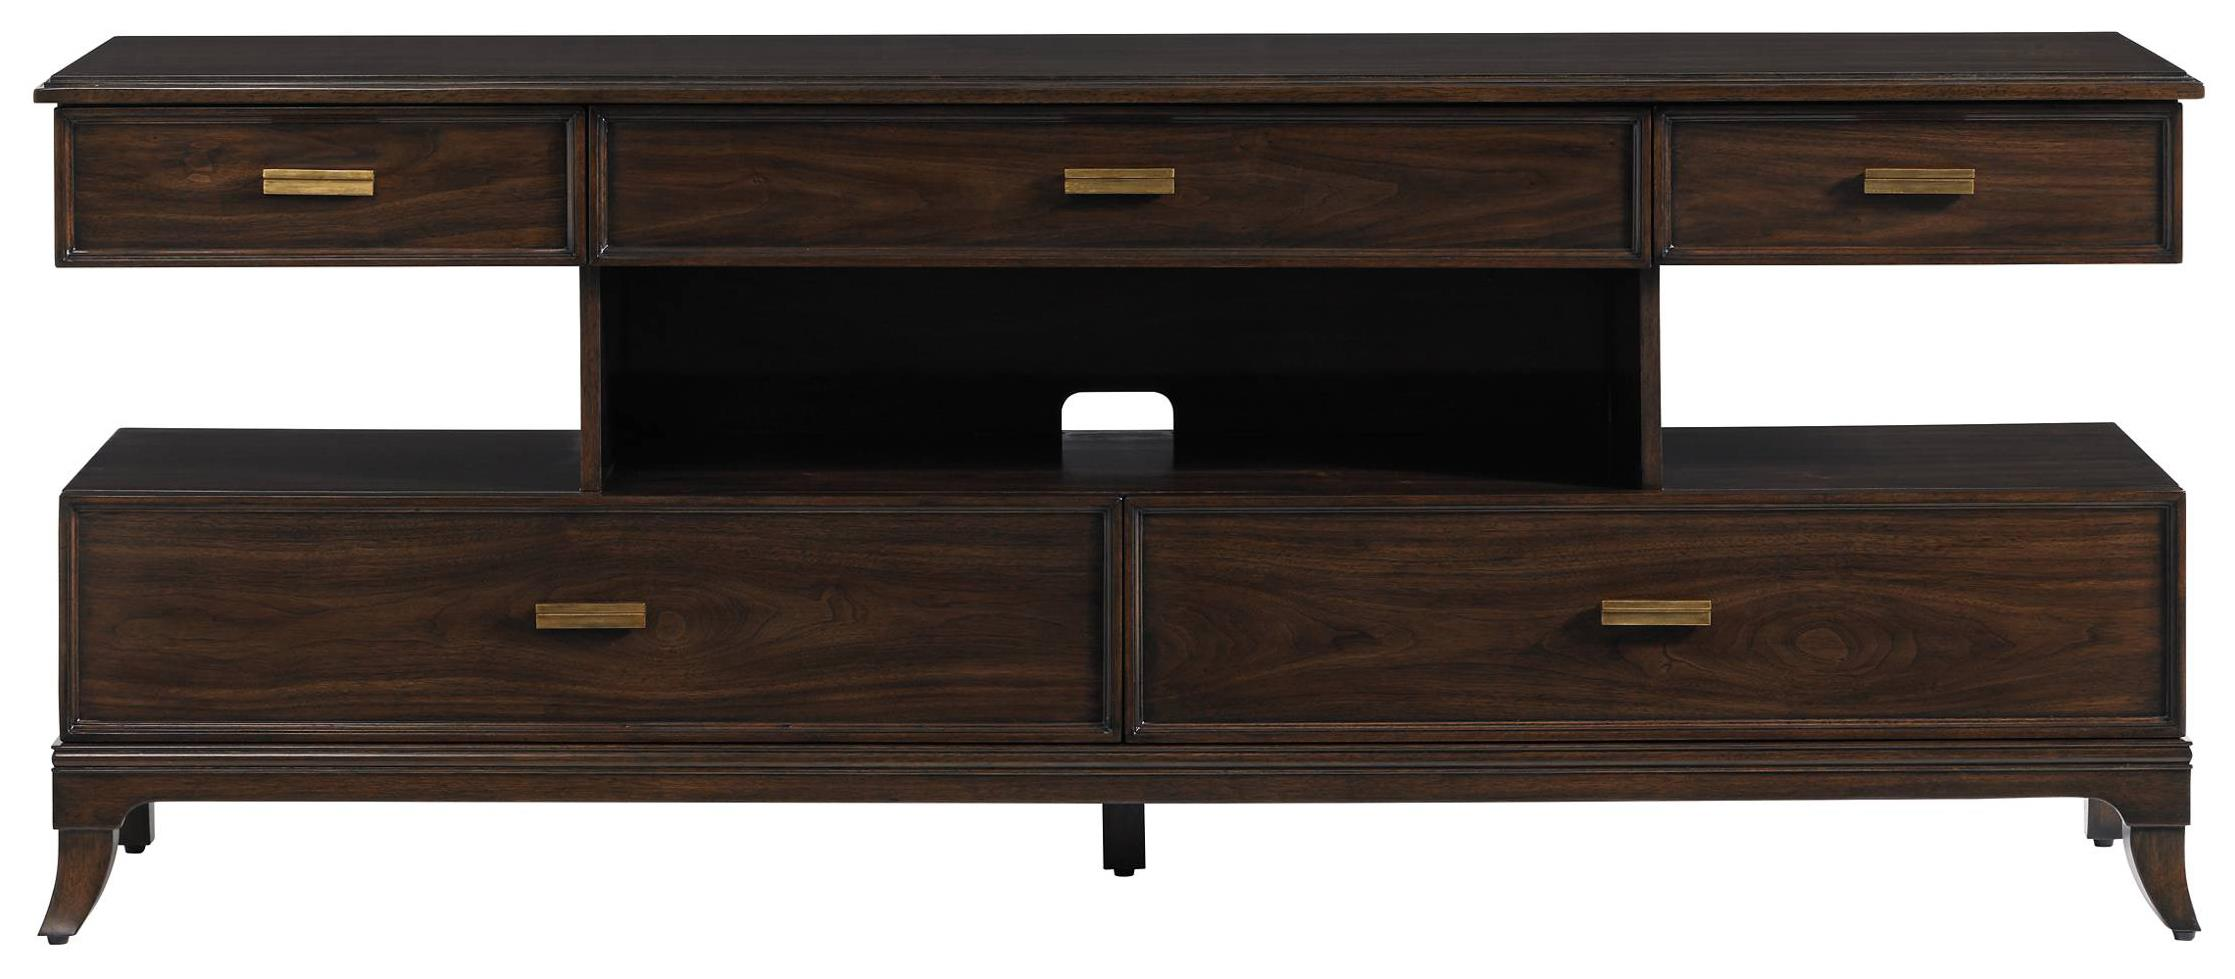 Stanley Furniture Crestaire Ladera Media Console - Item Number: 436-15-30